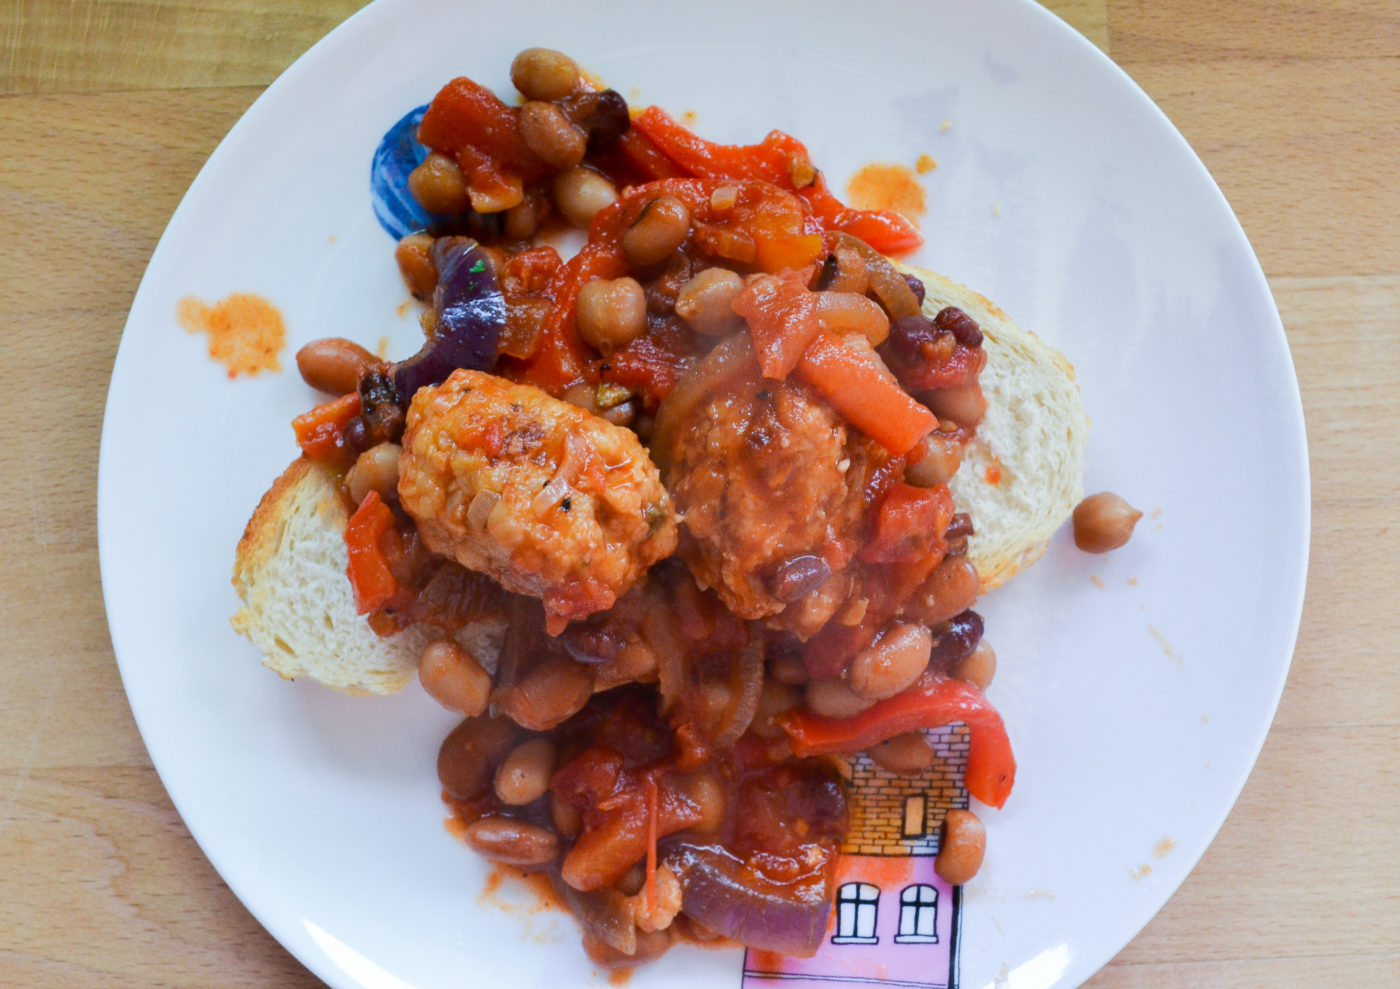 homemade baked beans and sausages